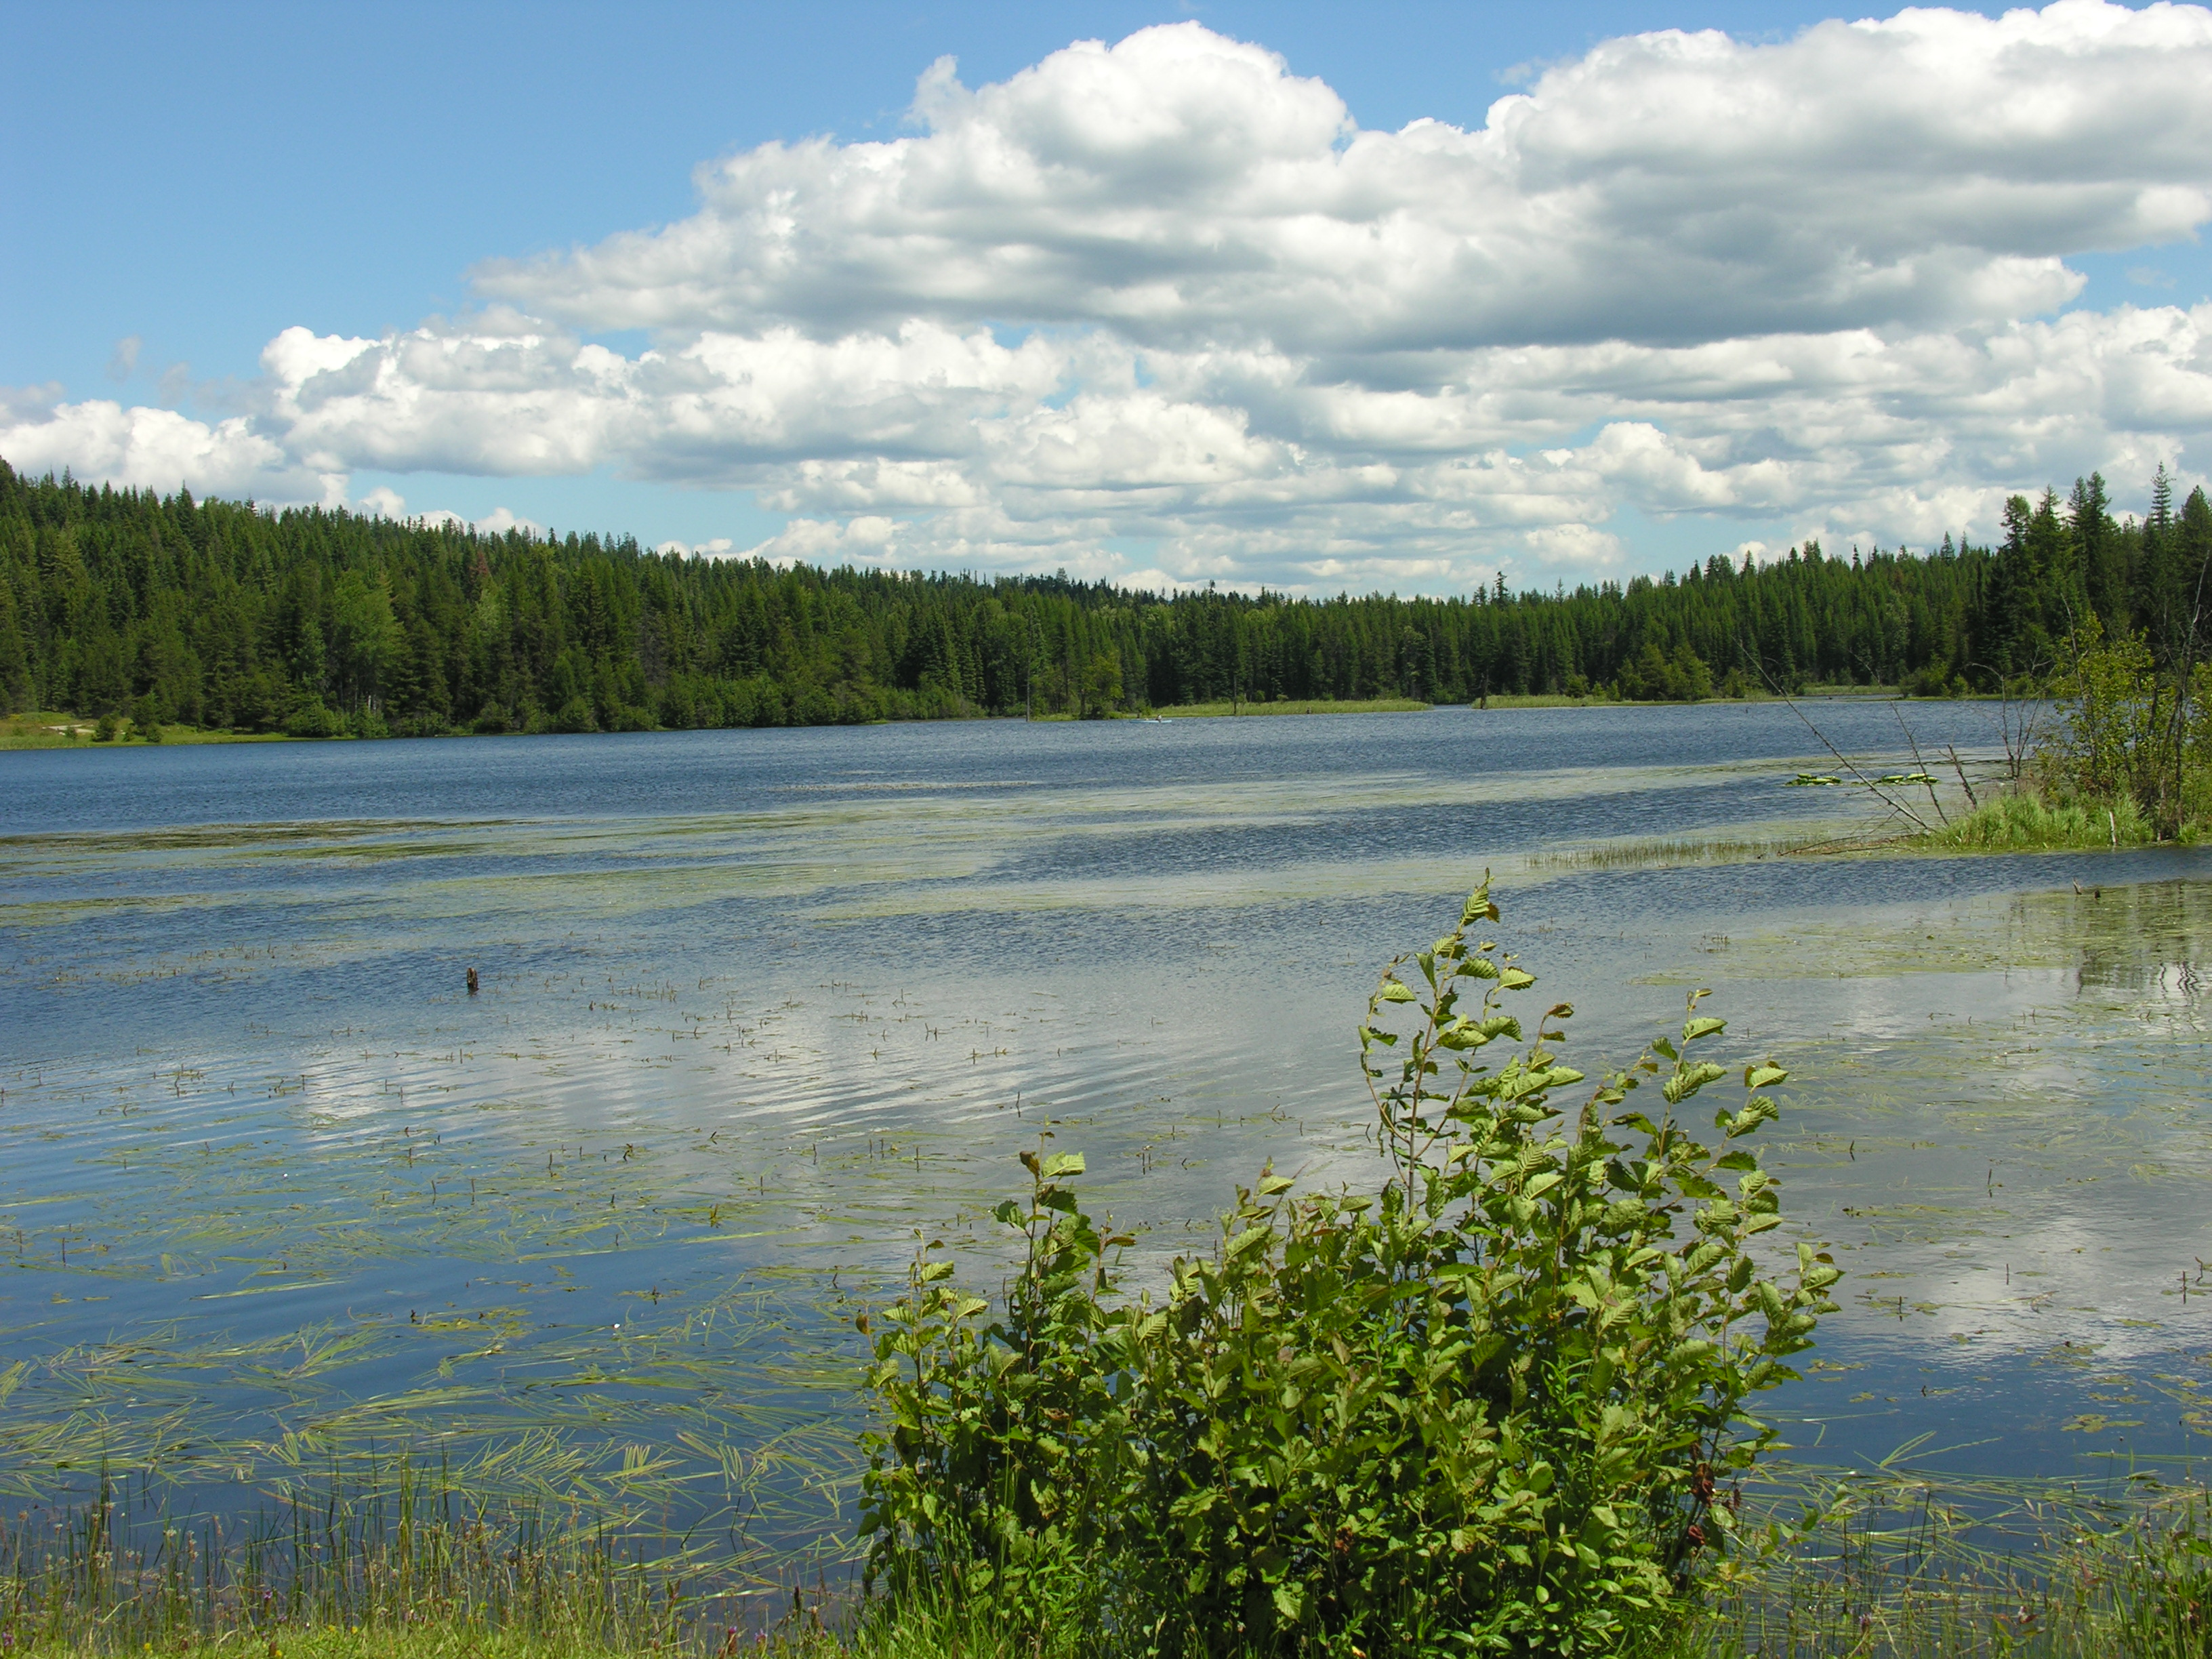 Photo: Lake with blue sky and clouds in background